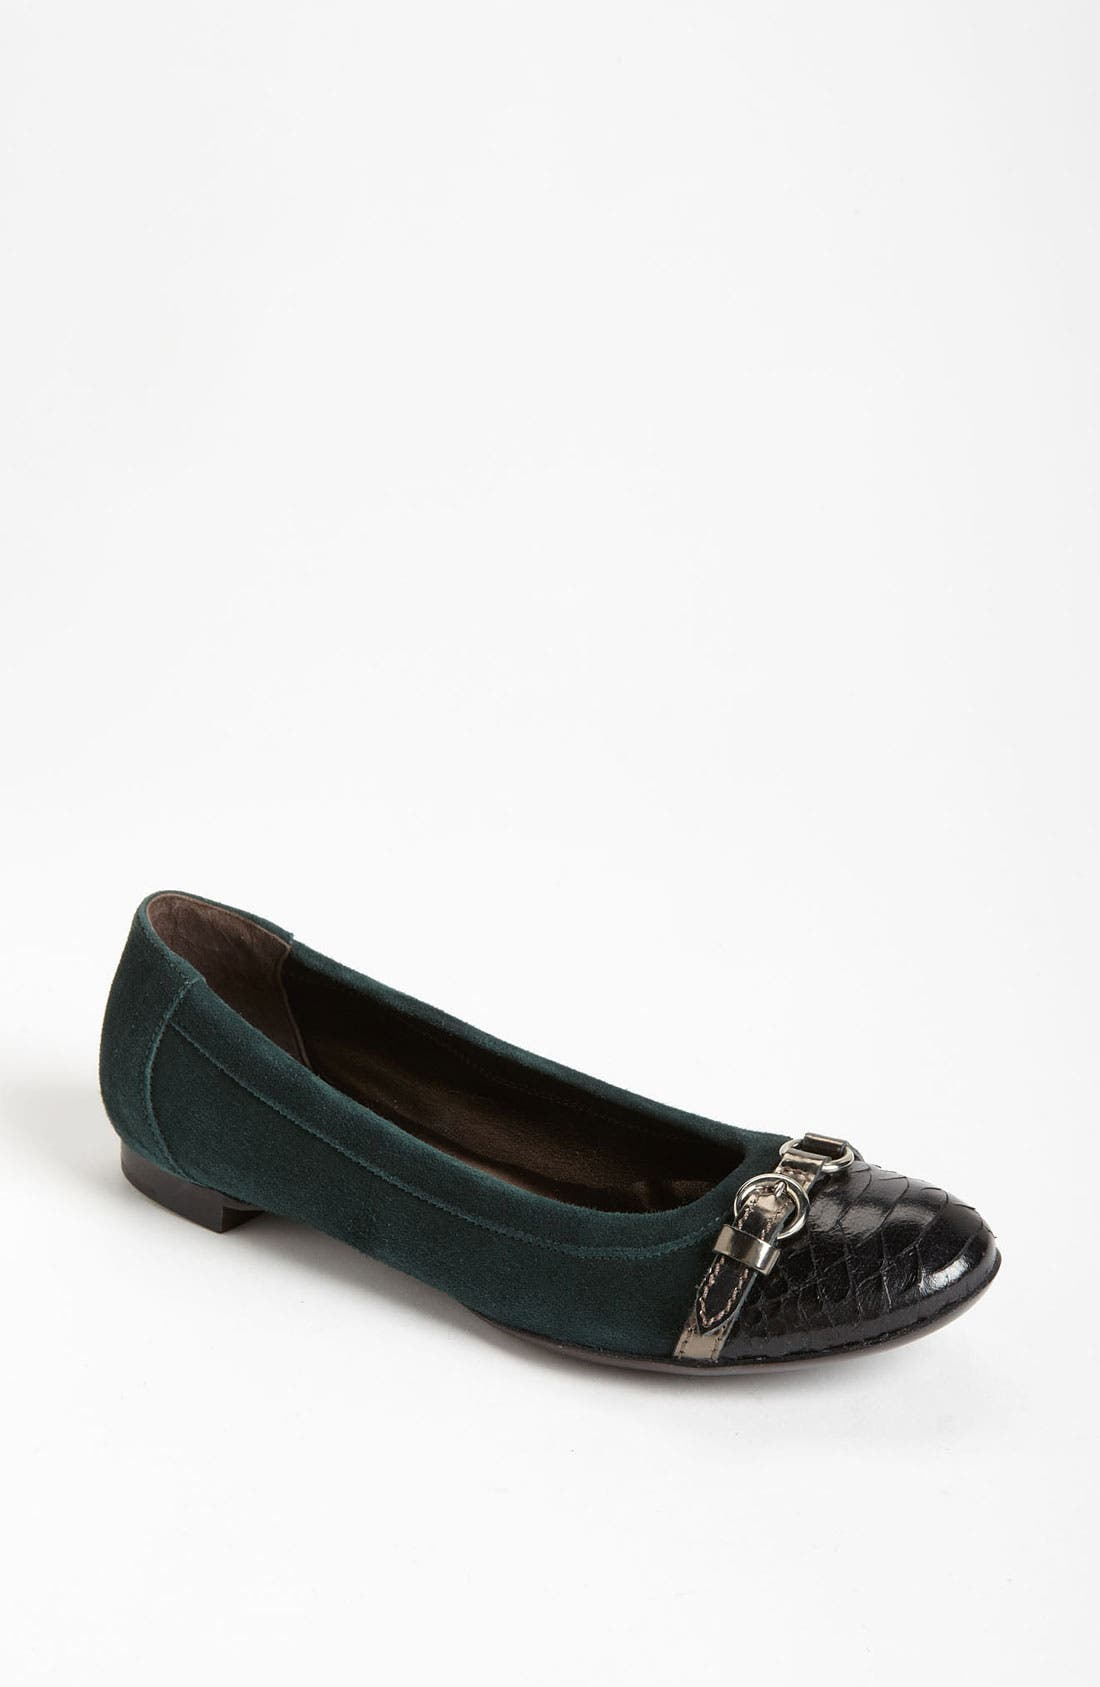 Alternate Image 1 Selected - AGL Cap Toe Ballerina Flat (Women)